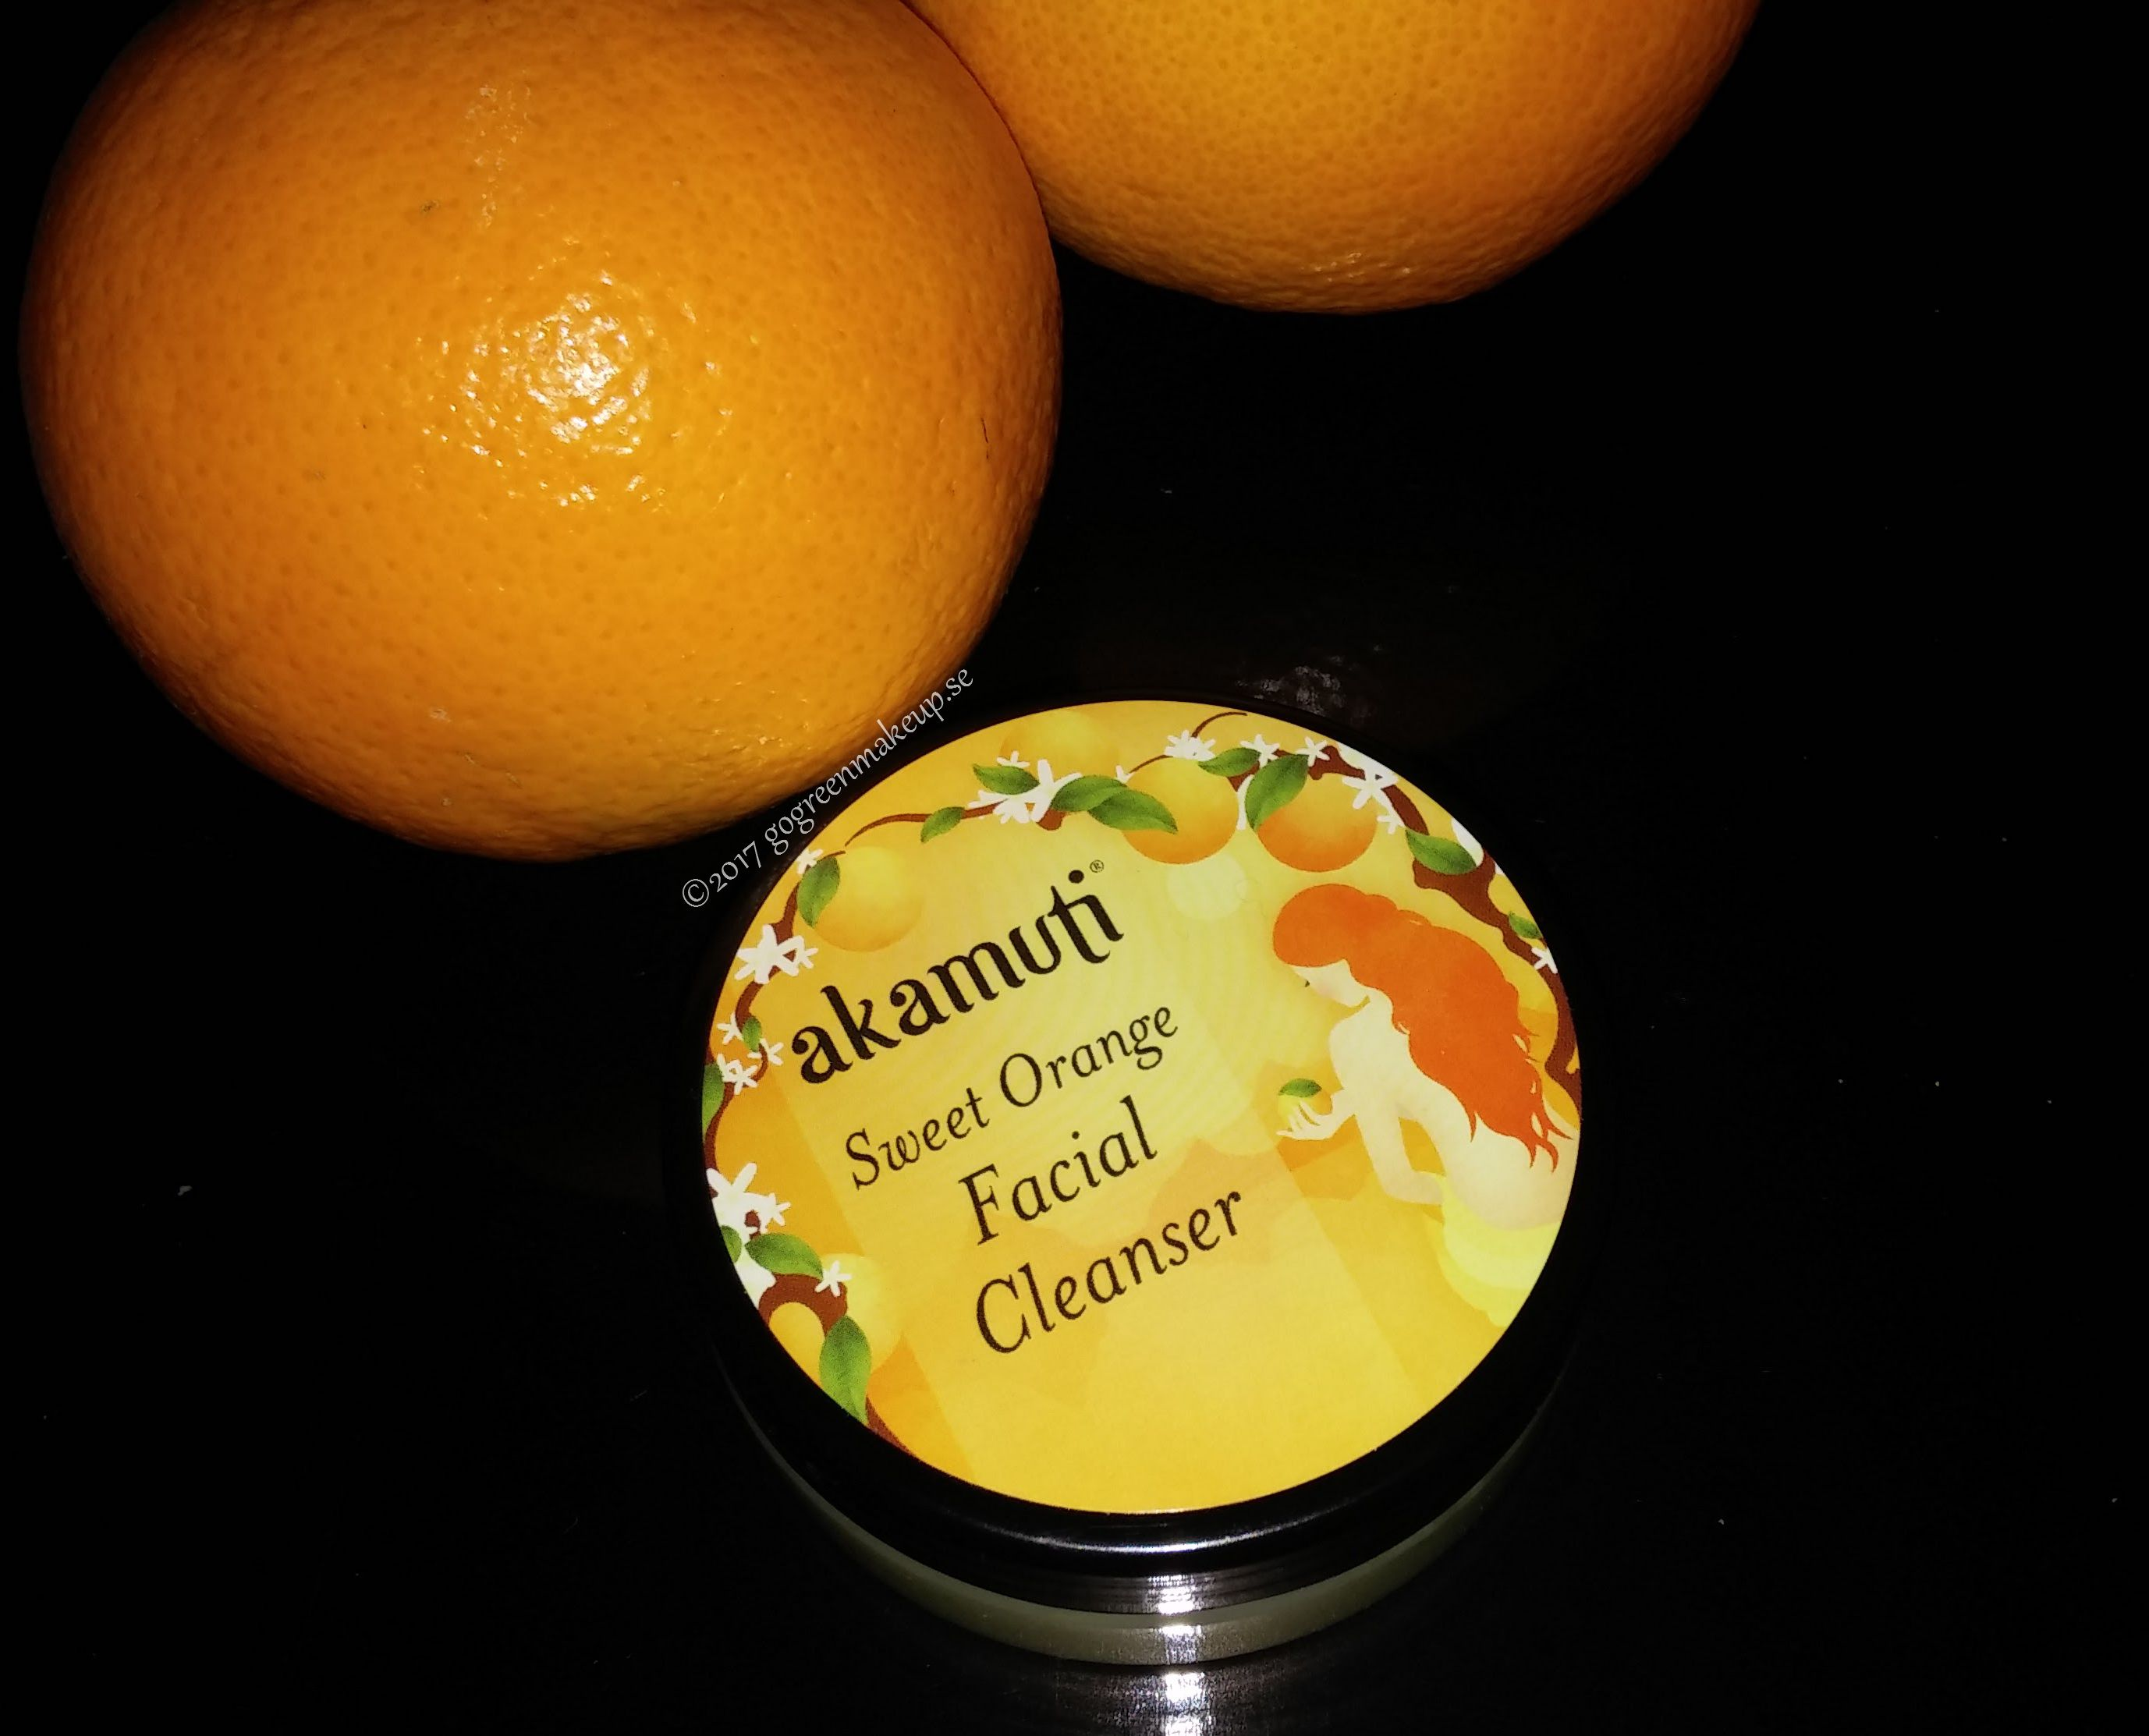 Sweet Orange Facial Cleanser